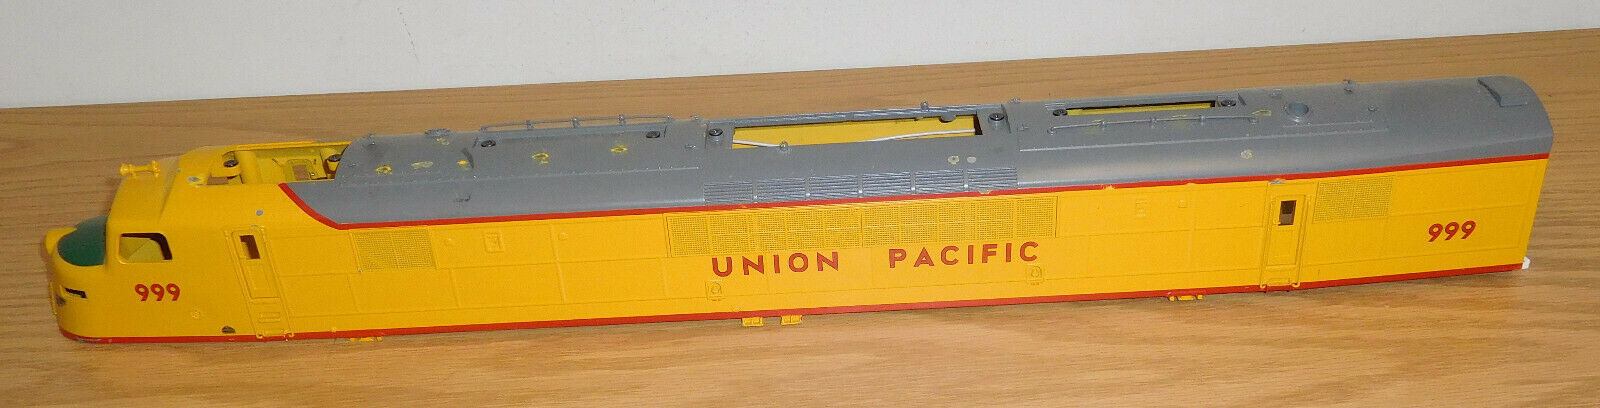 LIONEL  34673 UNION PACIFIC CENTIPEDE DIESEL LOCOMOTIVE DIECAST SHELL O SCALE UP